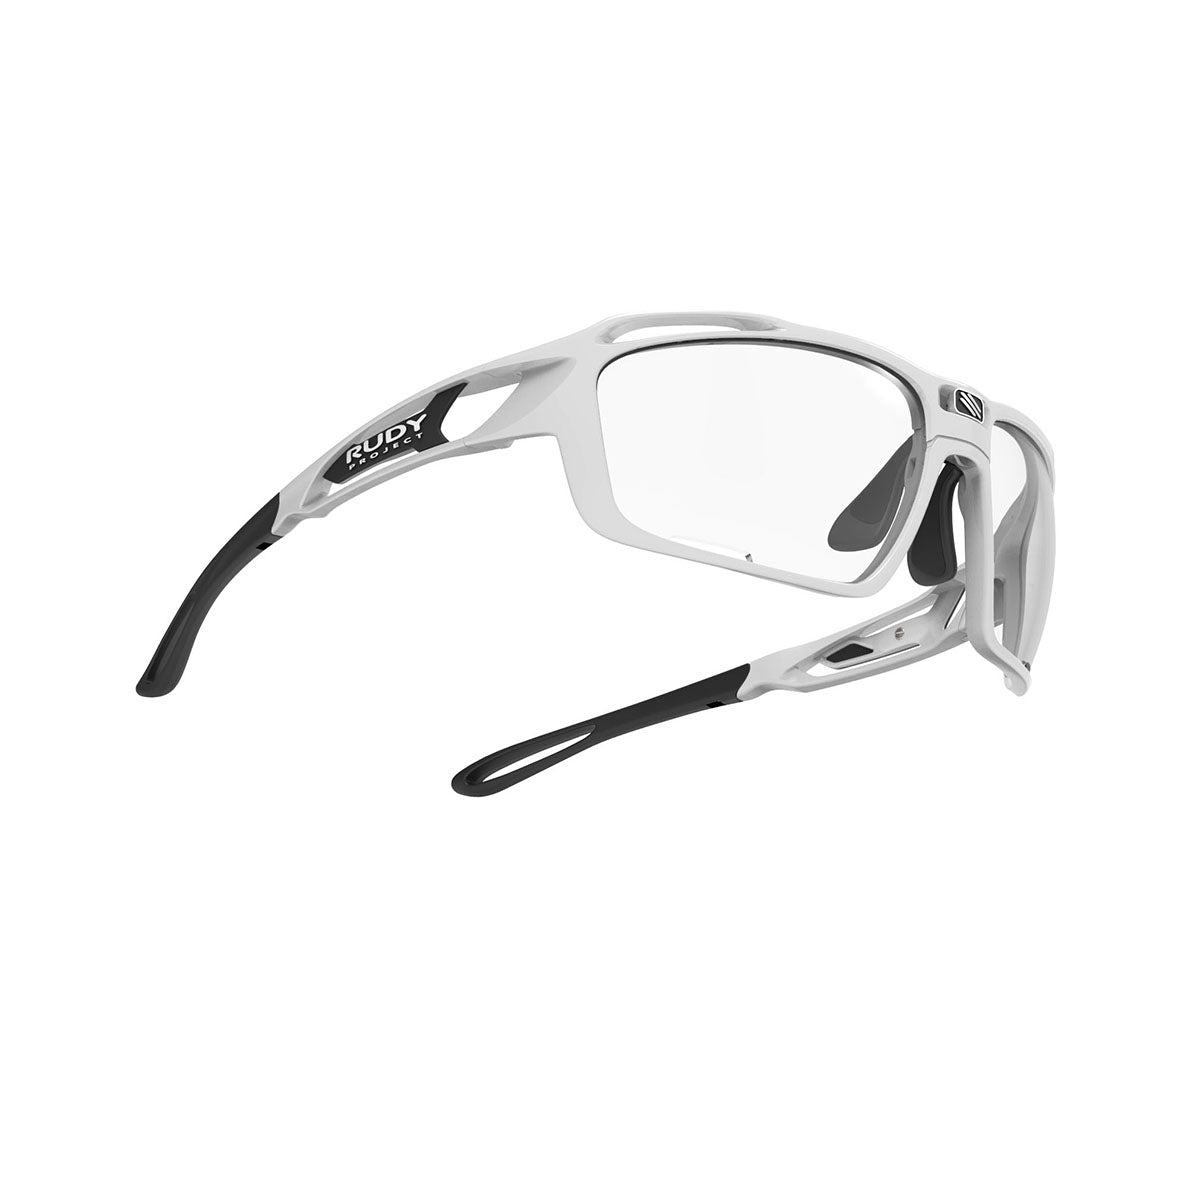 Rudy Project - Sintryx - frame color: White Gloss - lens color: ImpactX-2 Photochromic Clear to Black - Bumper Color:  - photo angle: Bottom Front Angle Variant Hover Image